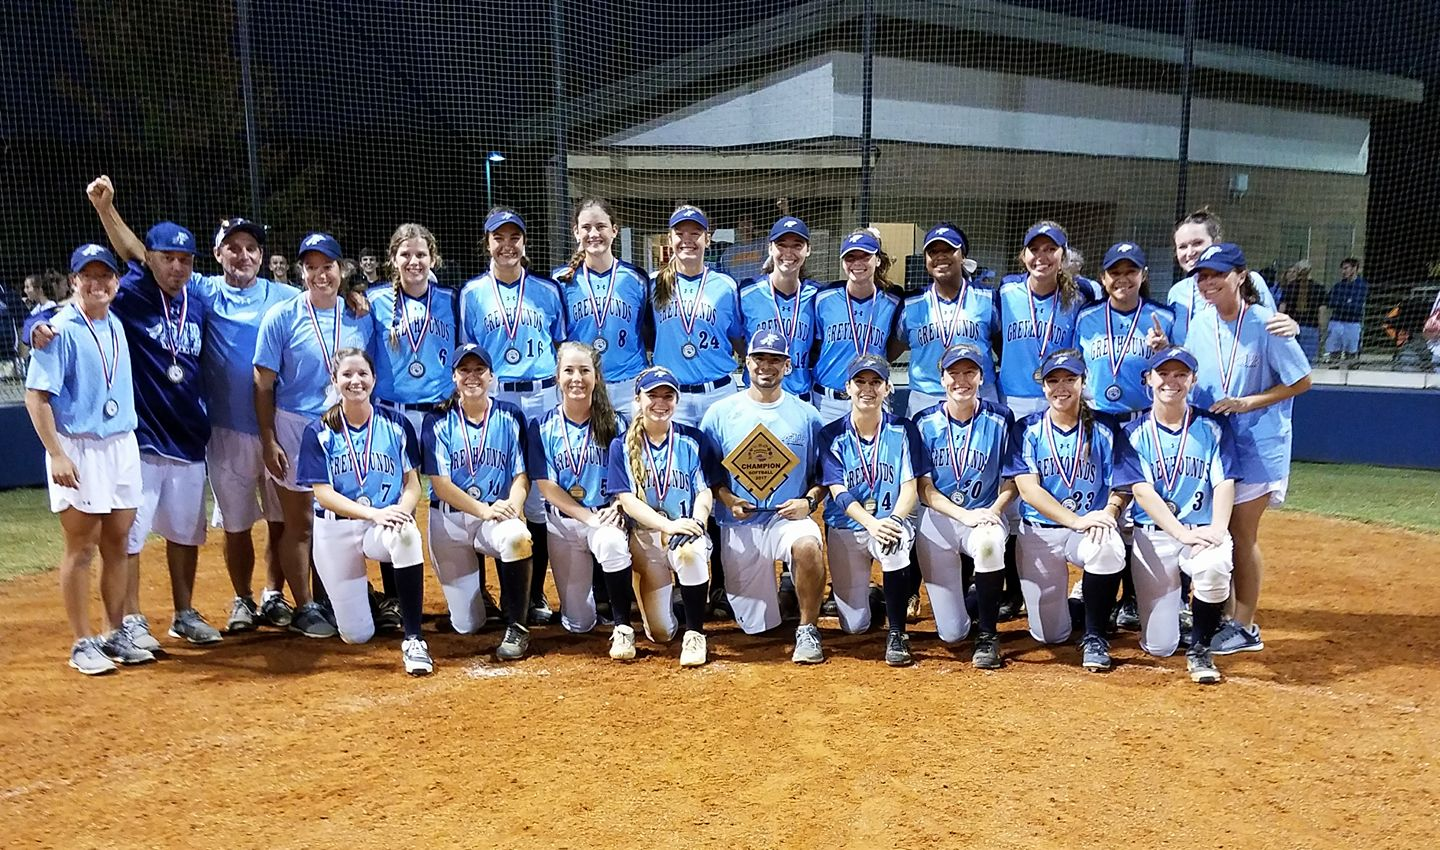 2018 Varsity and JV Fastpitch softball rosters announced